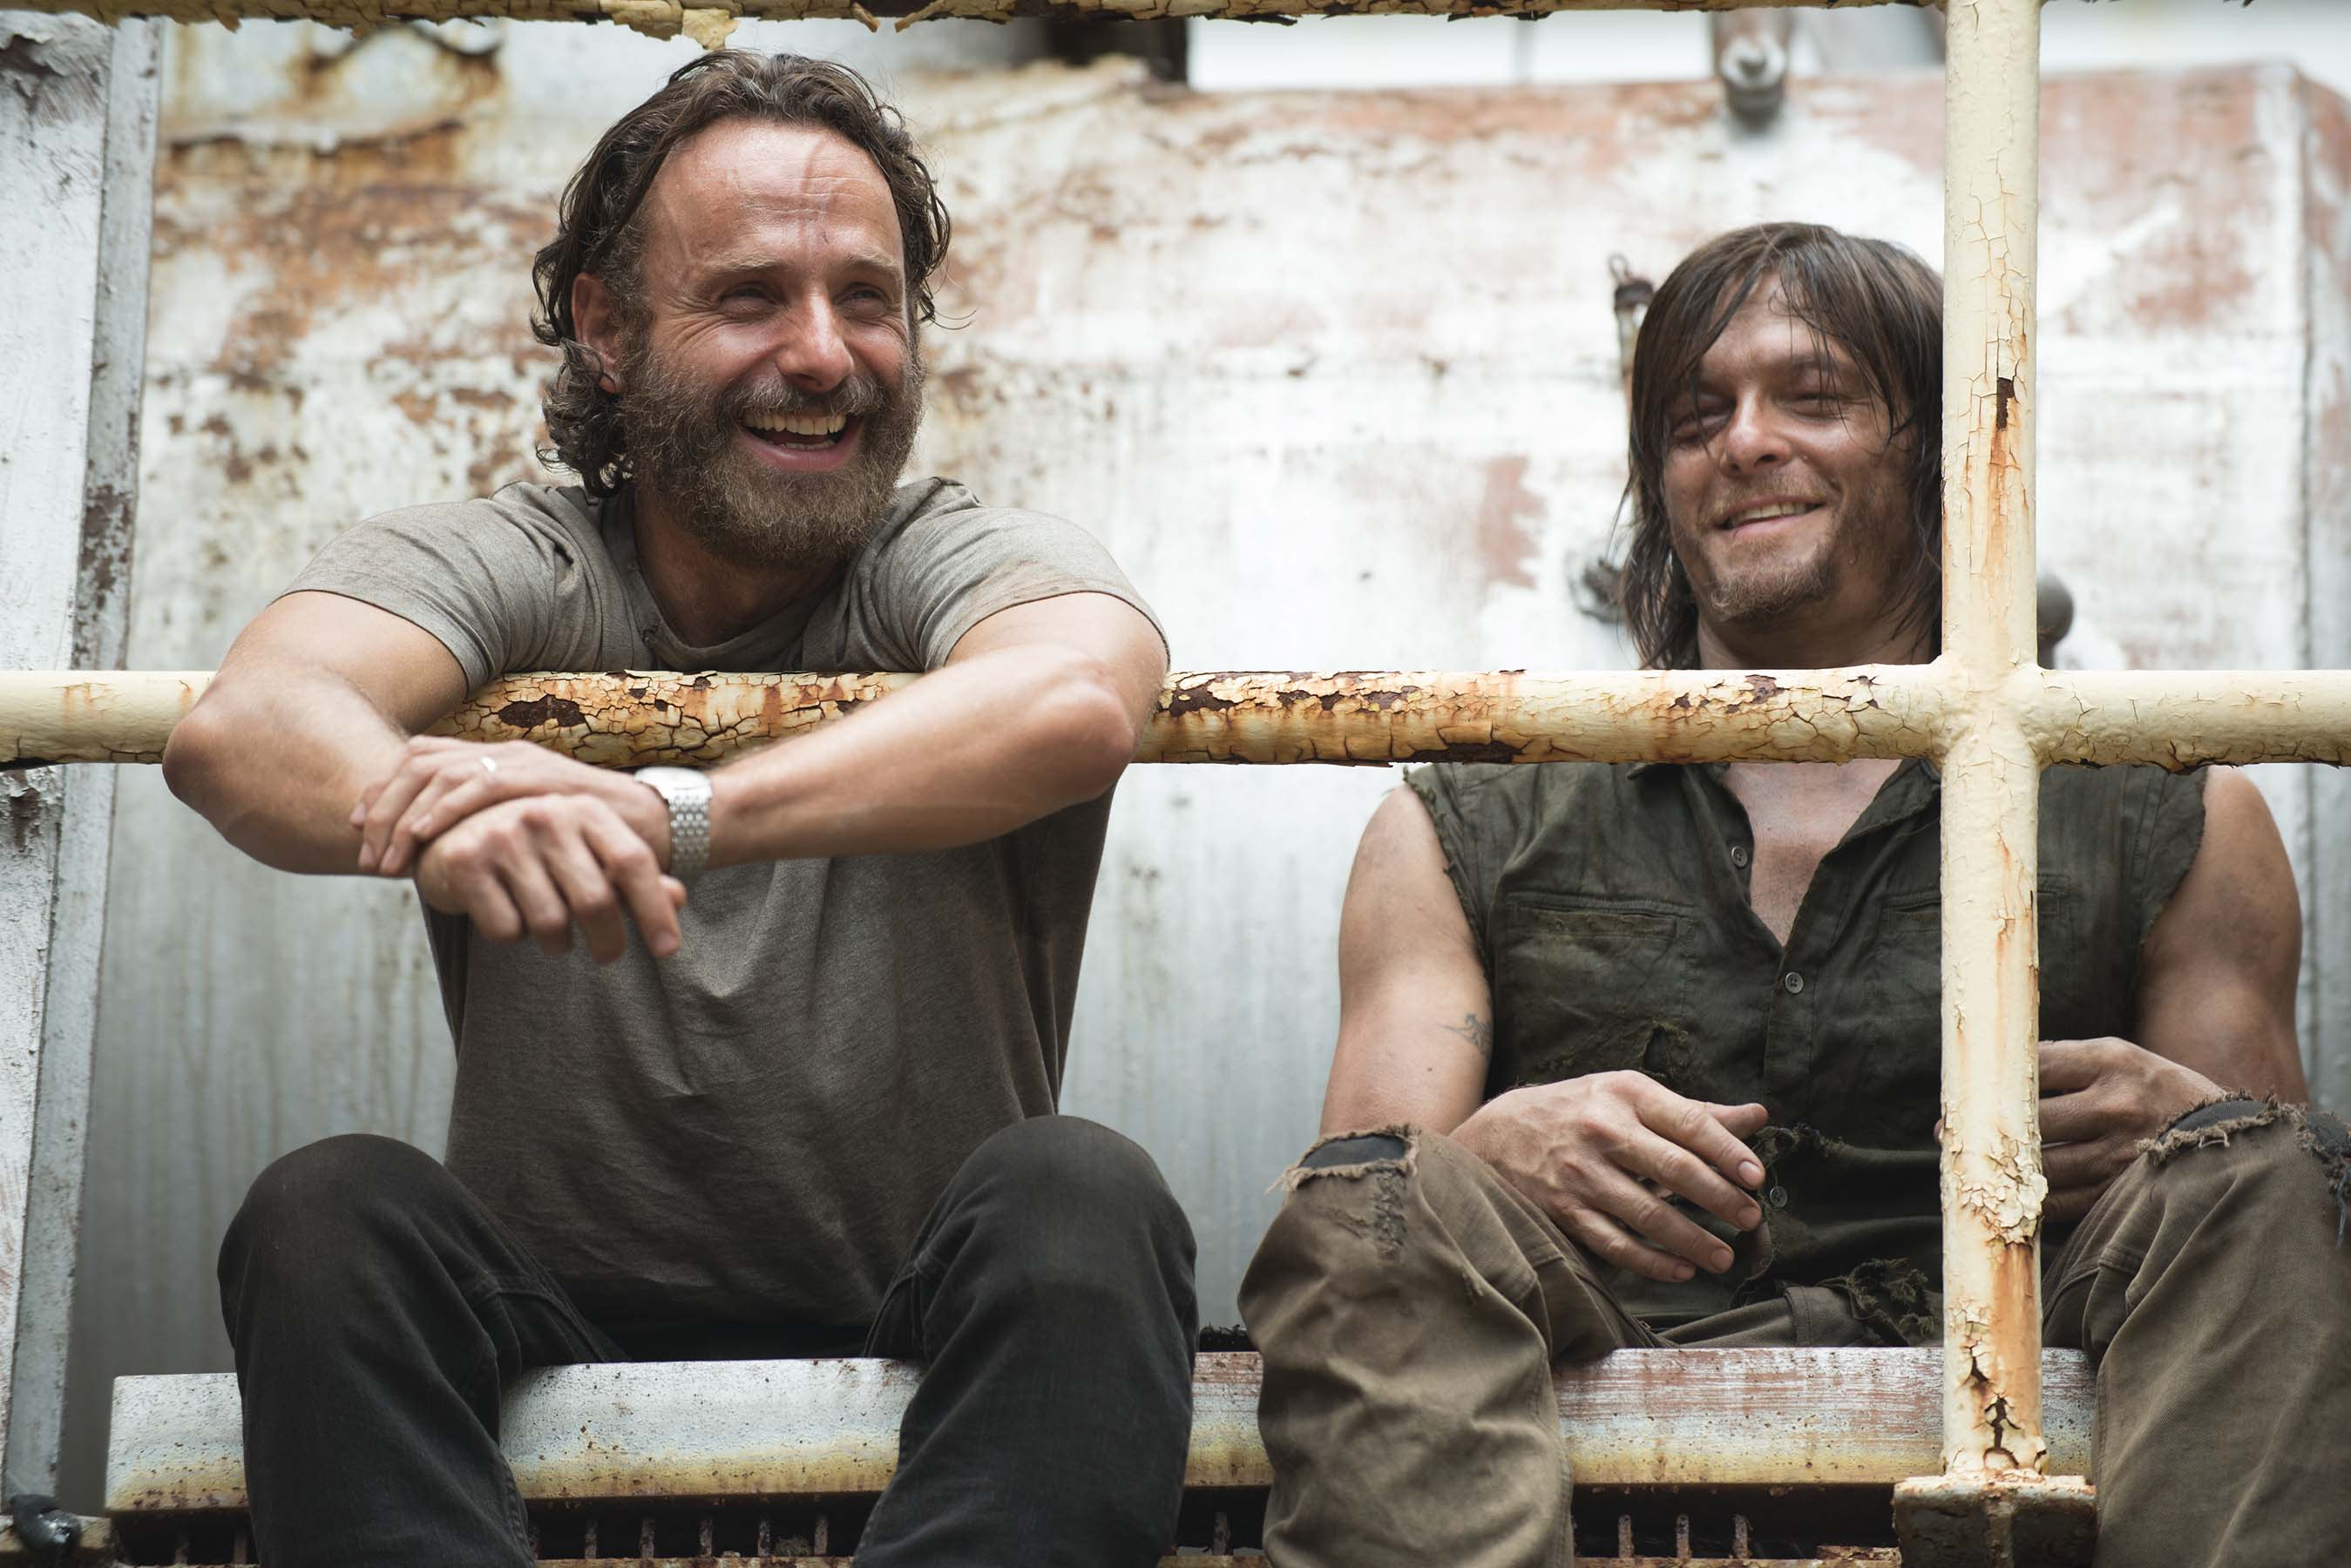 Norman Reedus And Andrew Lincoln Had Pact To Leave The Walking Dead